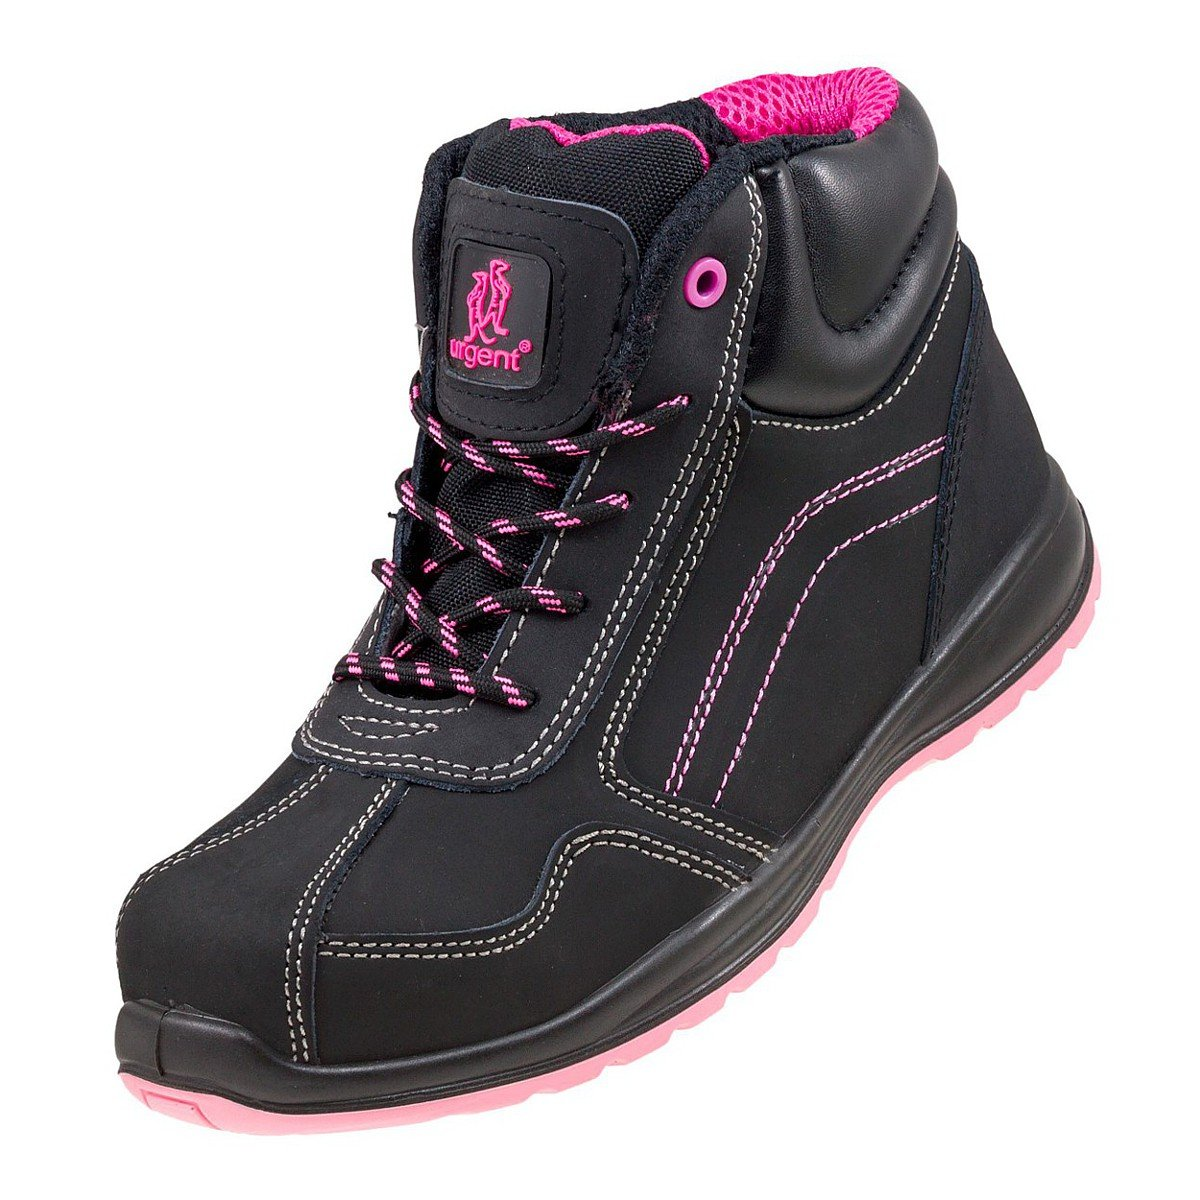 51c0cc01c4a Urgent Lightweight Ladies Women Safety Boots Black Pink Hiker Ankle Size  Small Sizes! Safety Work Boots Steel Toe Cap 116 S1